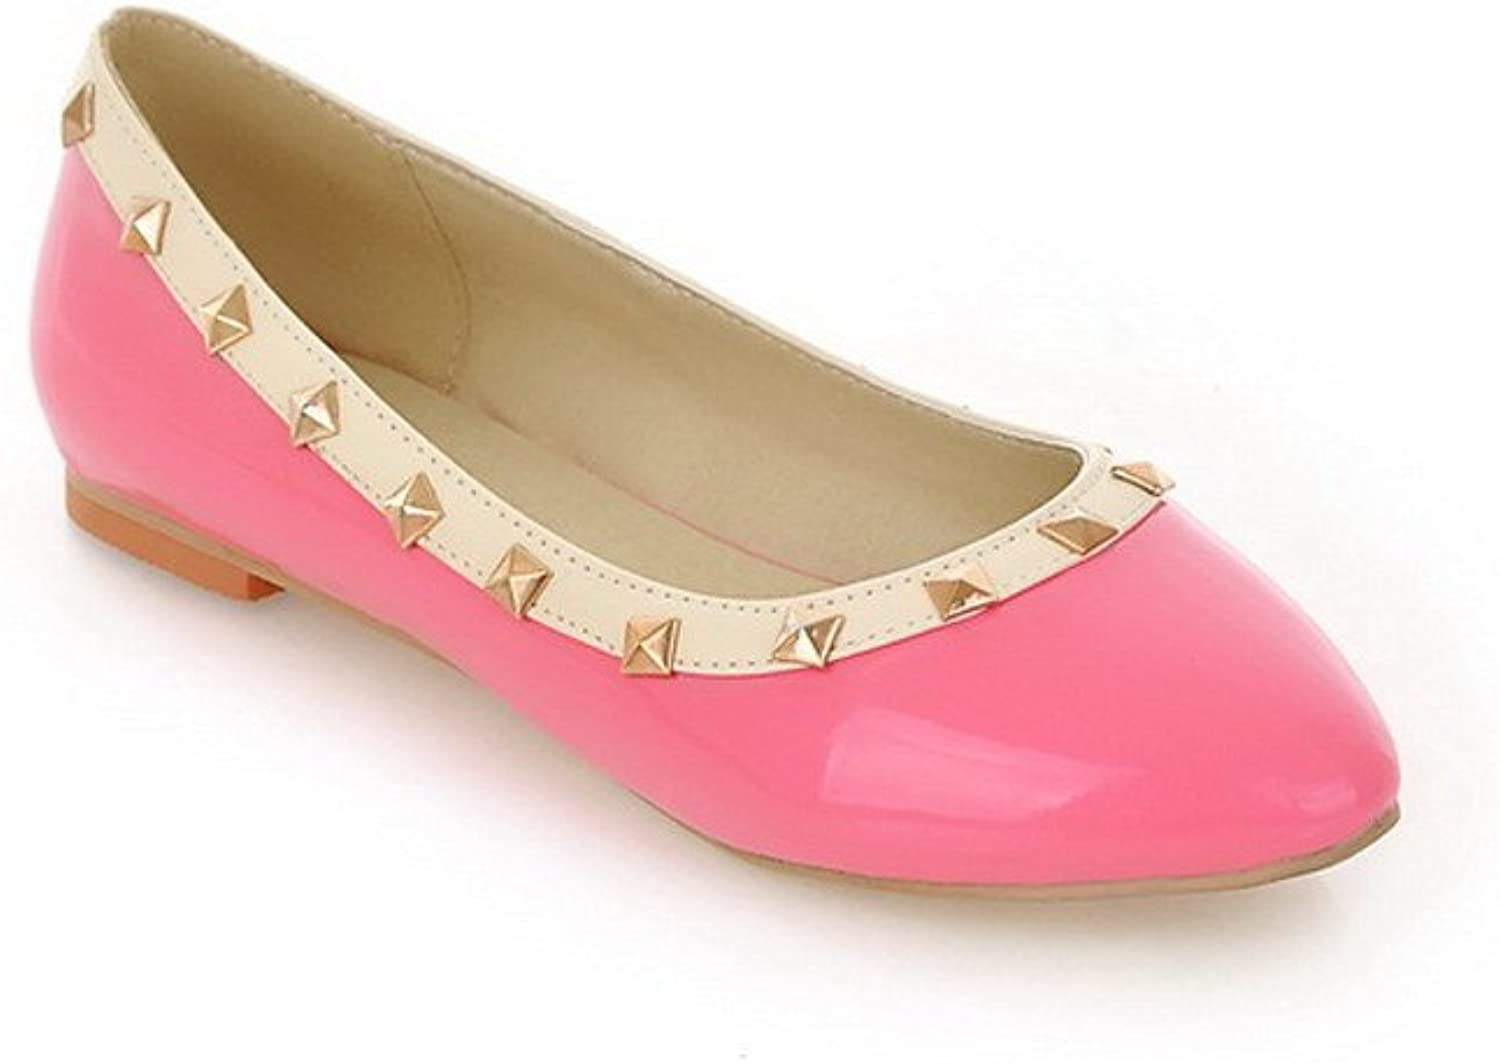 WeenFashion Women's Closed Round Toe Patent Leather PU Solid Flats whith Rivet, Pink, 10 B(M) US